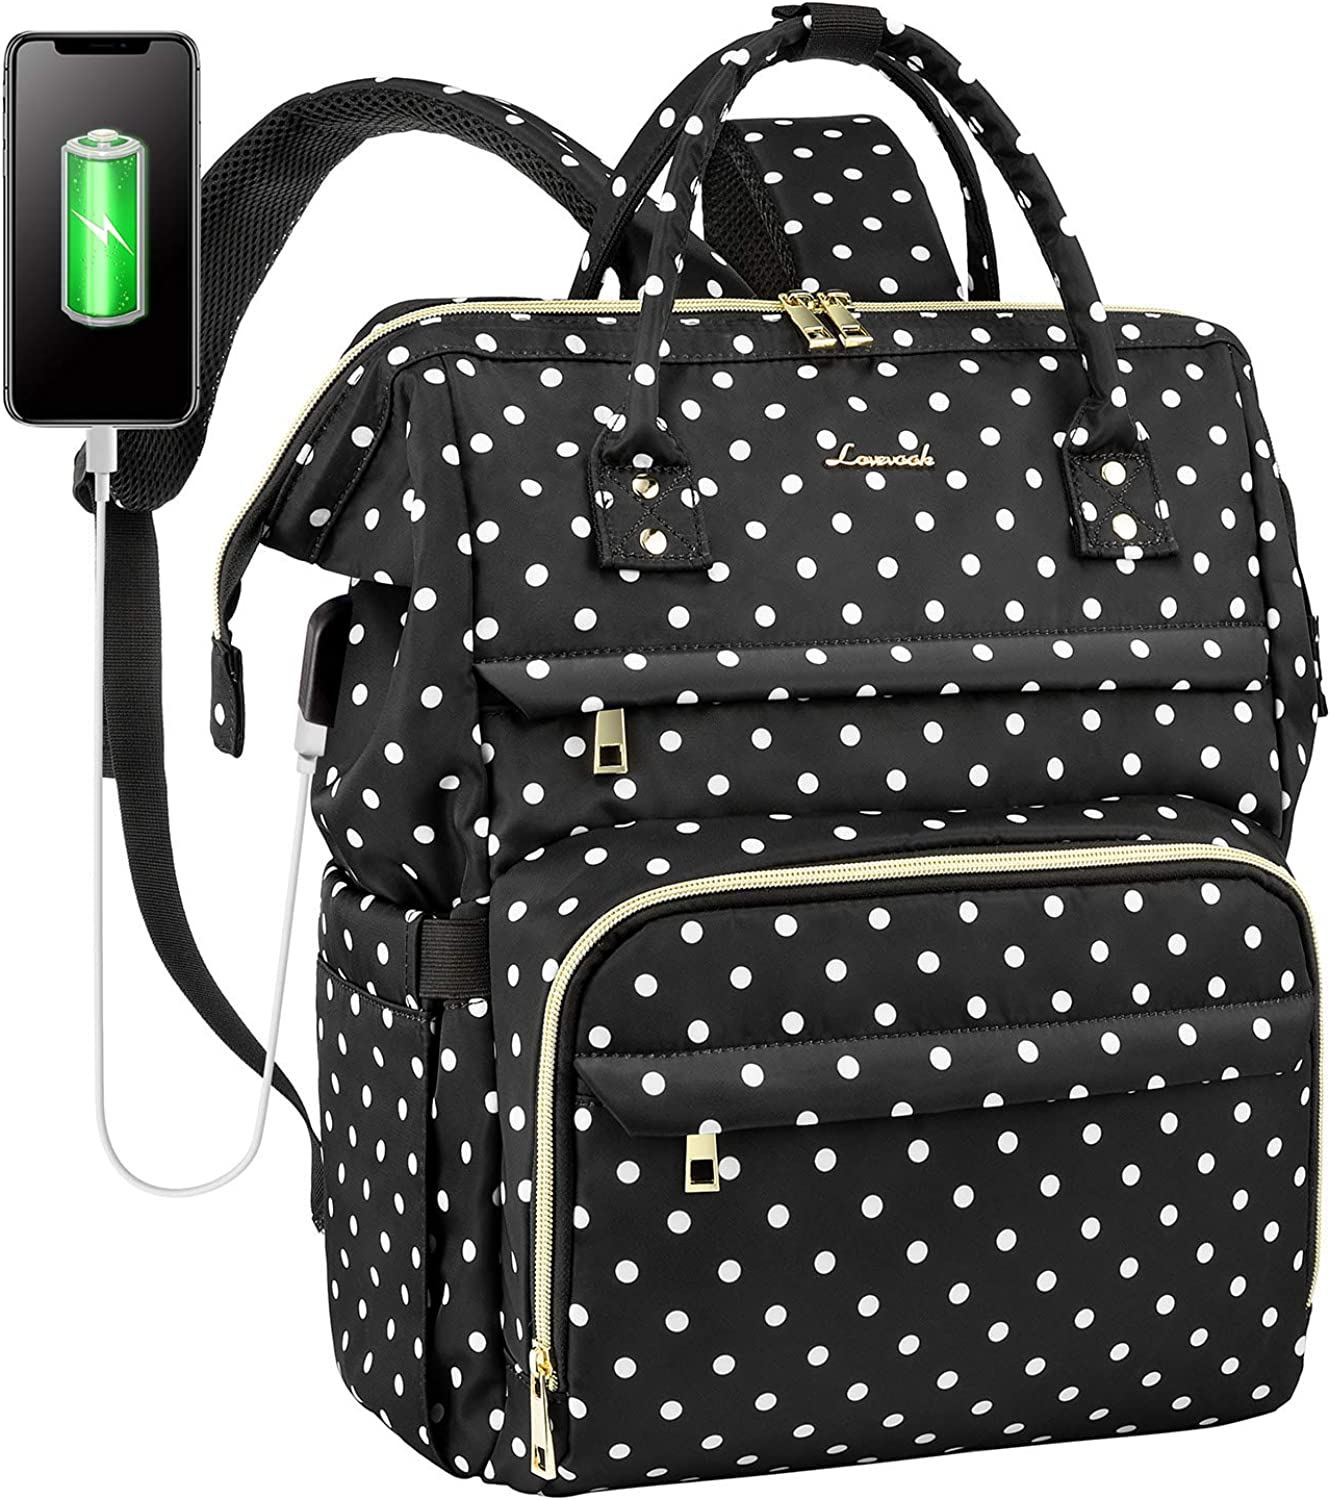 Laptop Backpack for Women Work Laptop Bag Stylish Teacher Backpack Business Computer Bags College Laptop Bookbag